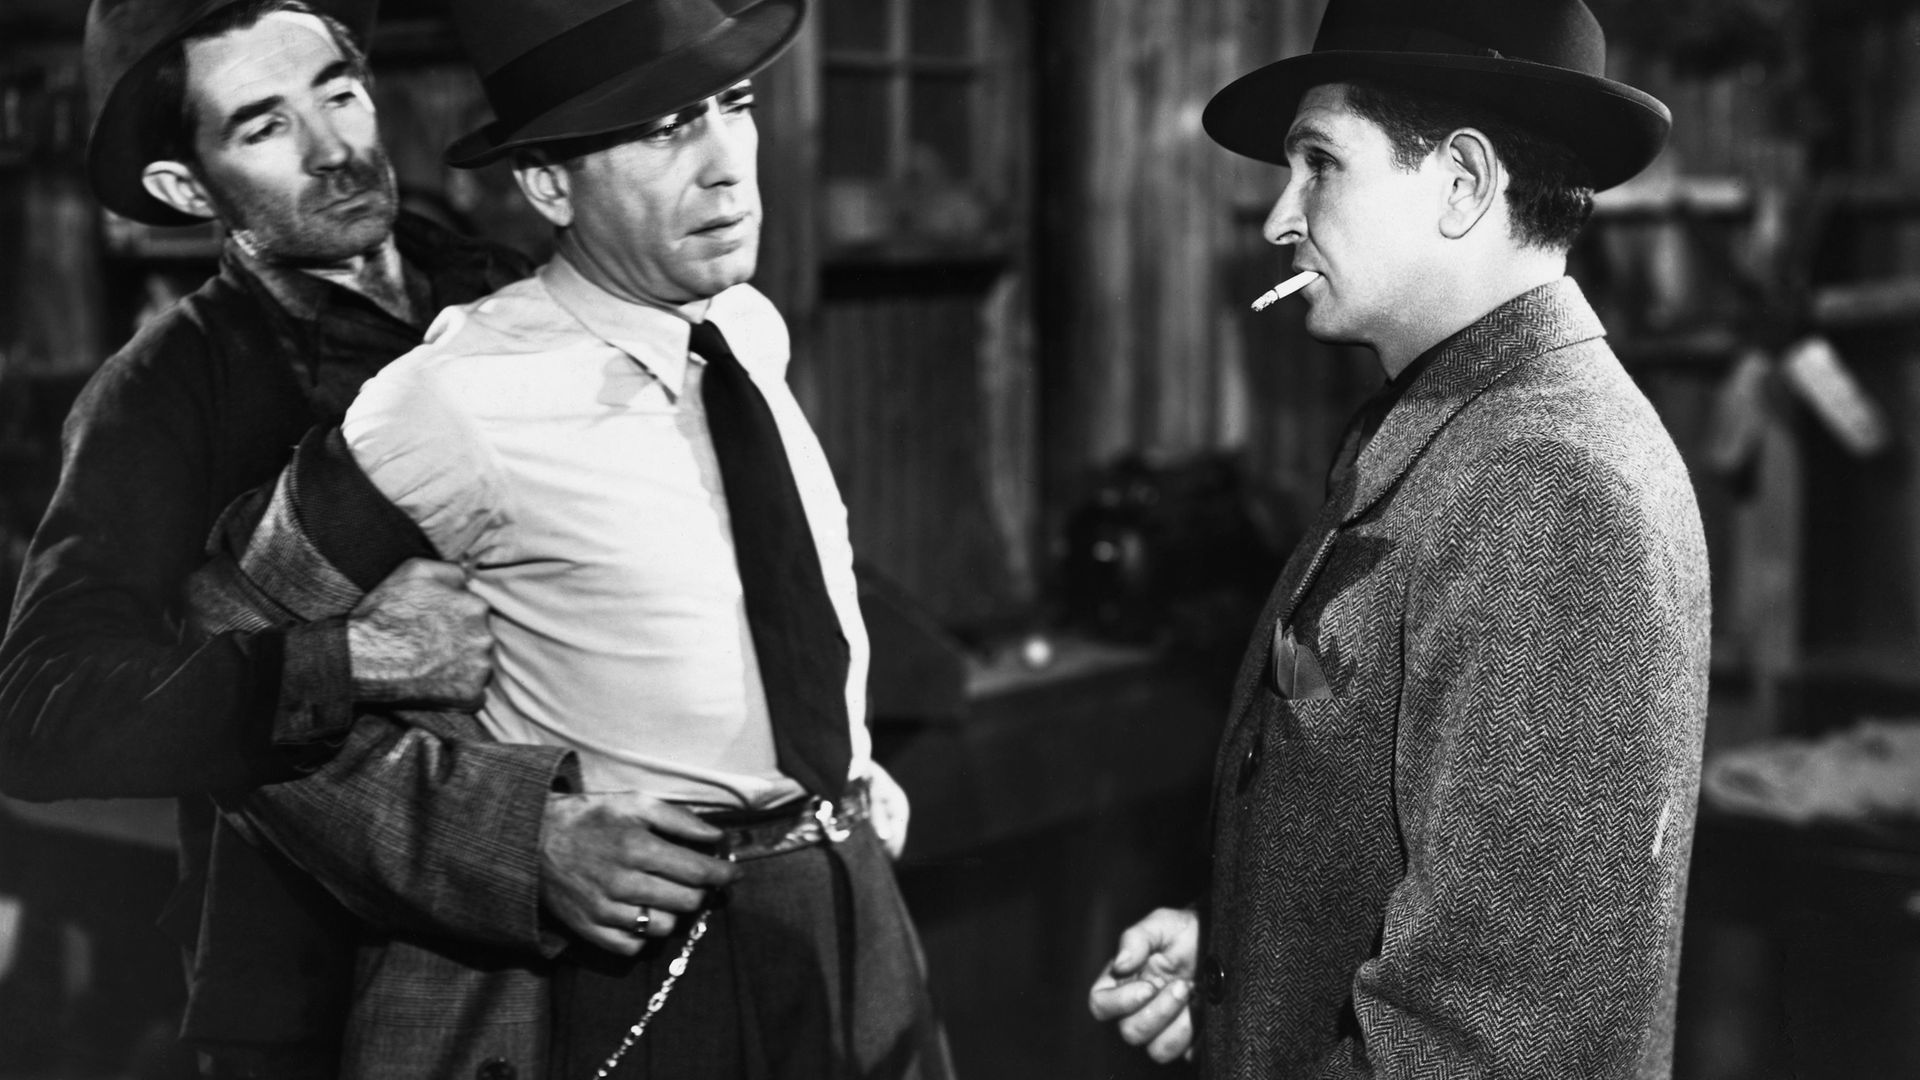 Humphrey Bogart, in The Big Sleep, as Philip Marlowe, the dogged private eye who snoops into the privacy of suspects. Or should that be 'prye-vacy'? - Credit: Corbis via Getty Images